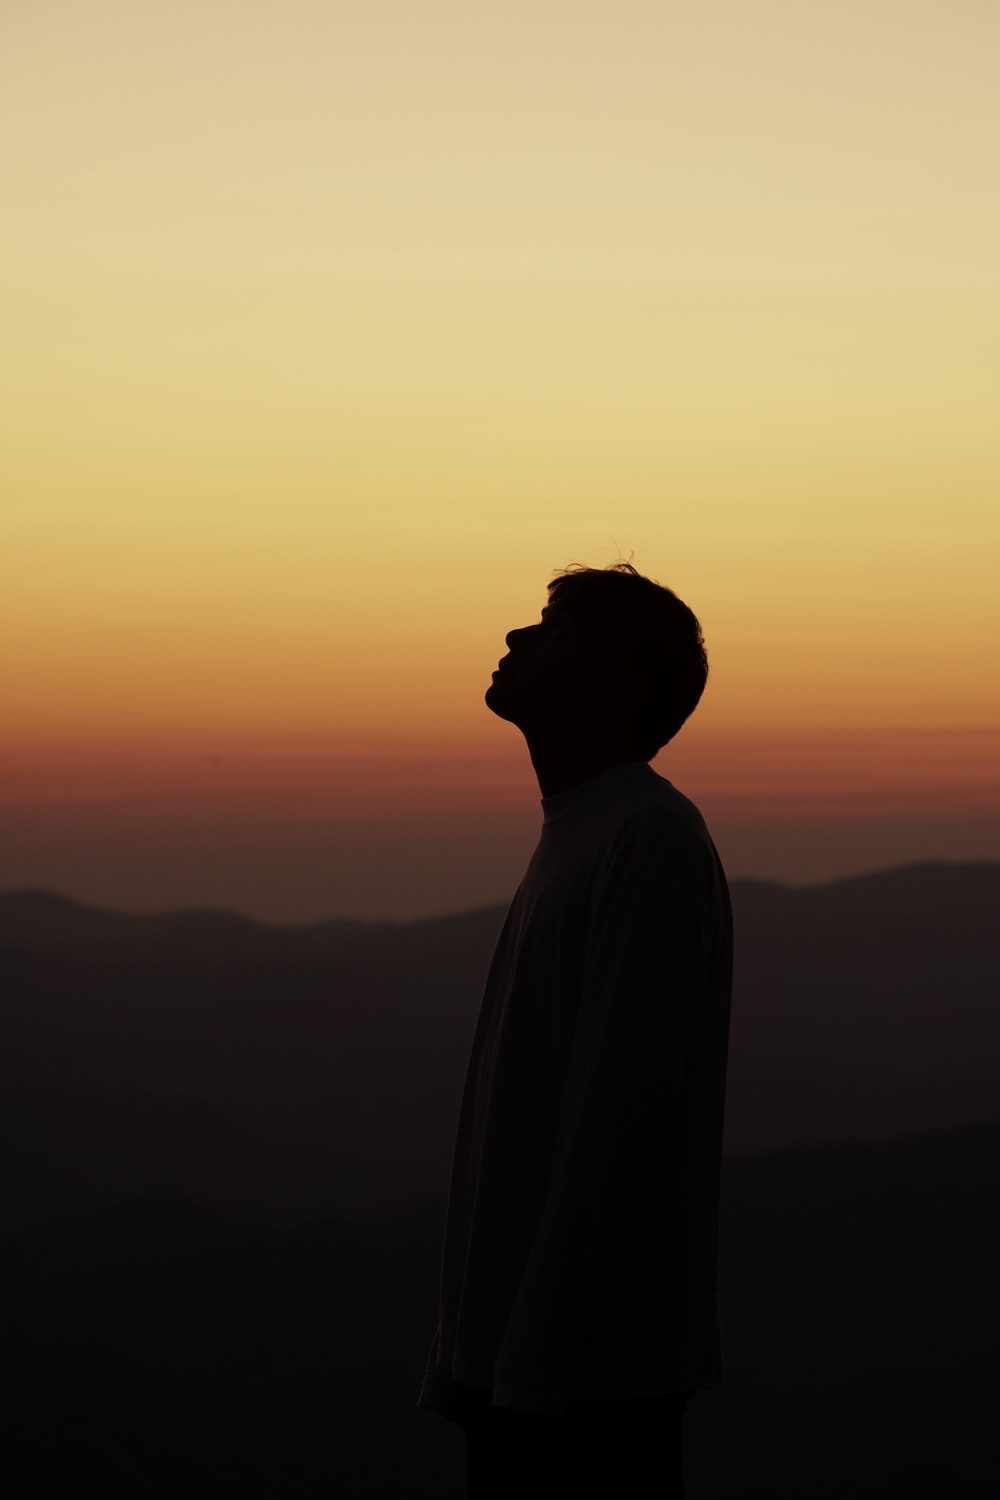 silhouette of person standing during sunset